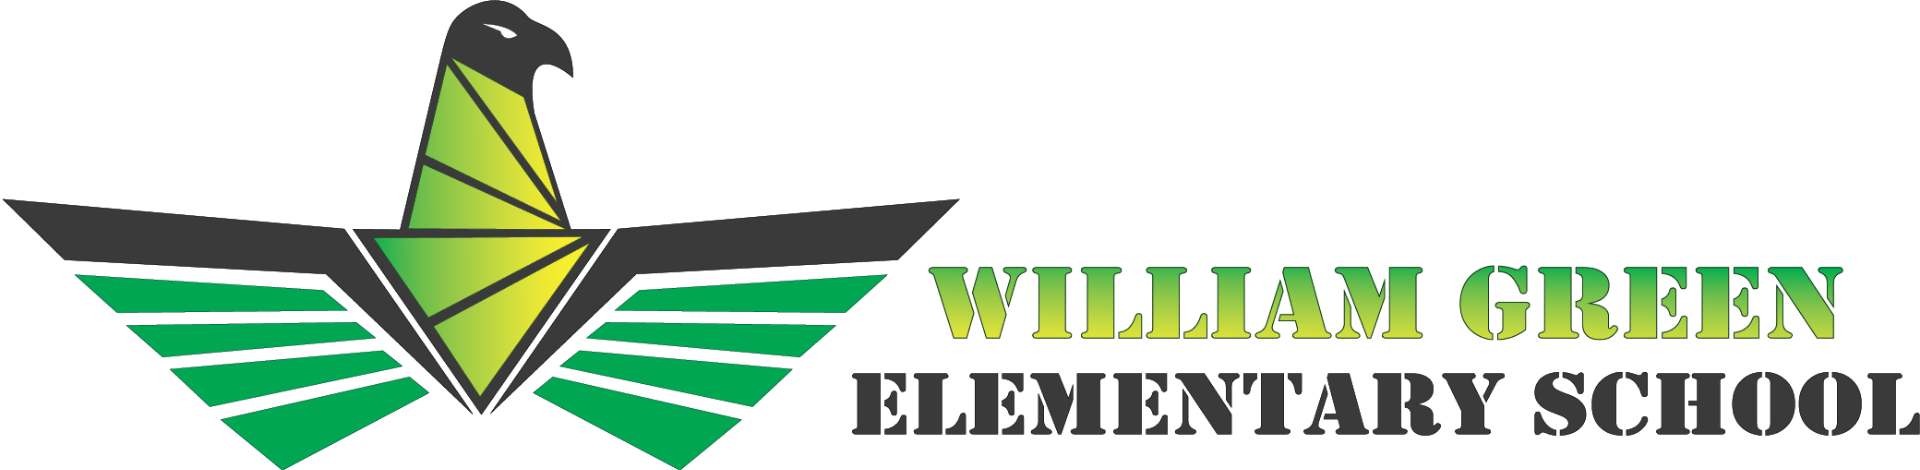 William Green Elementary